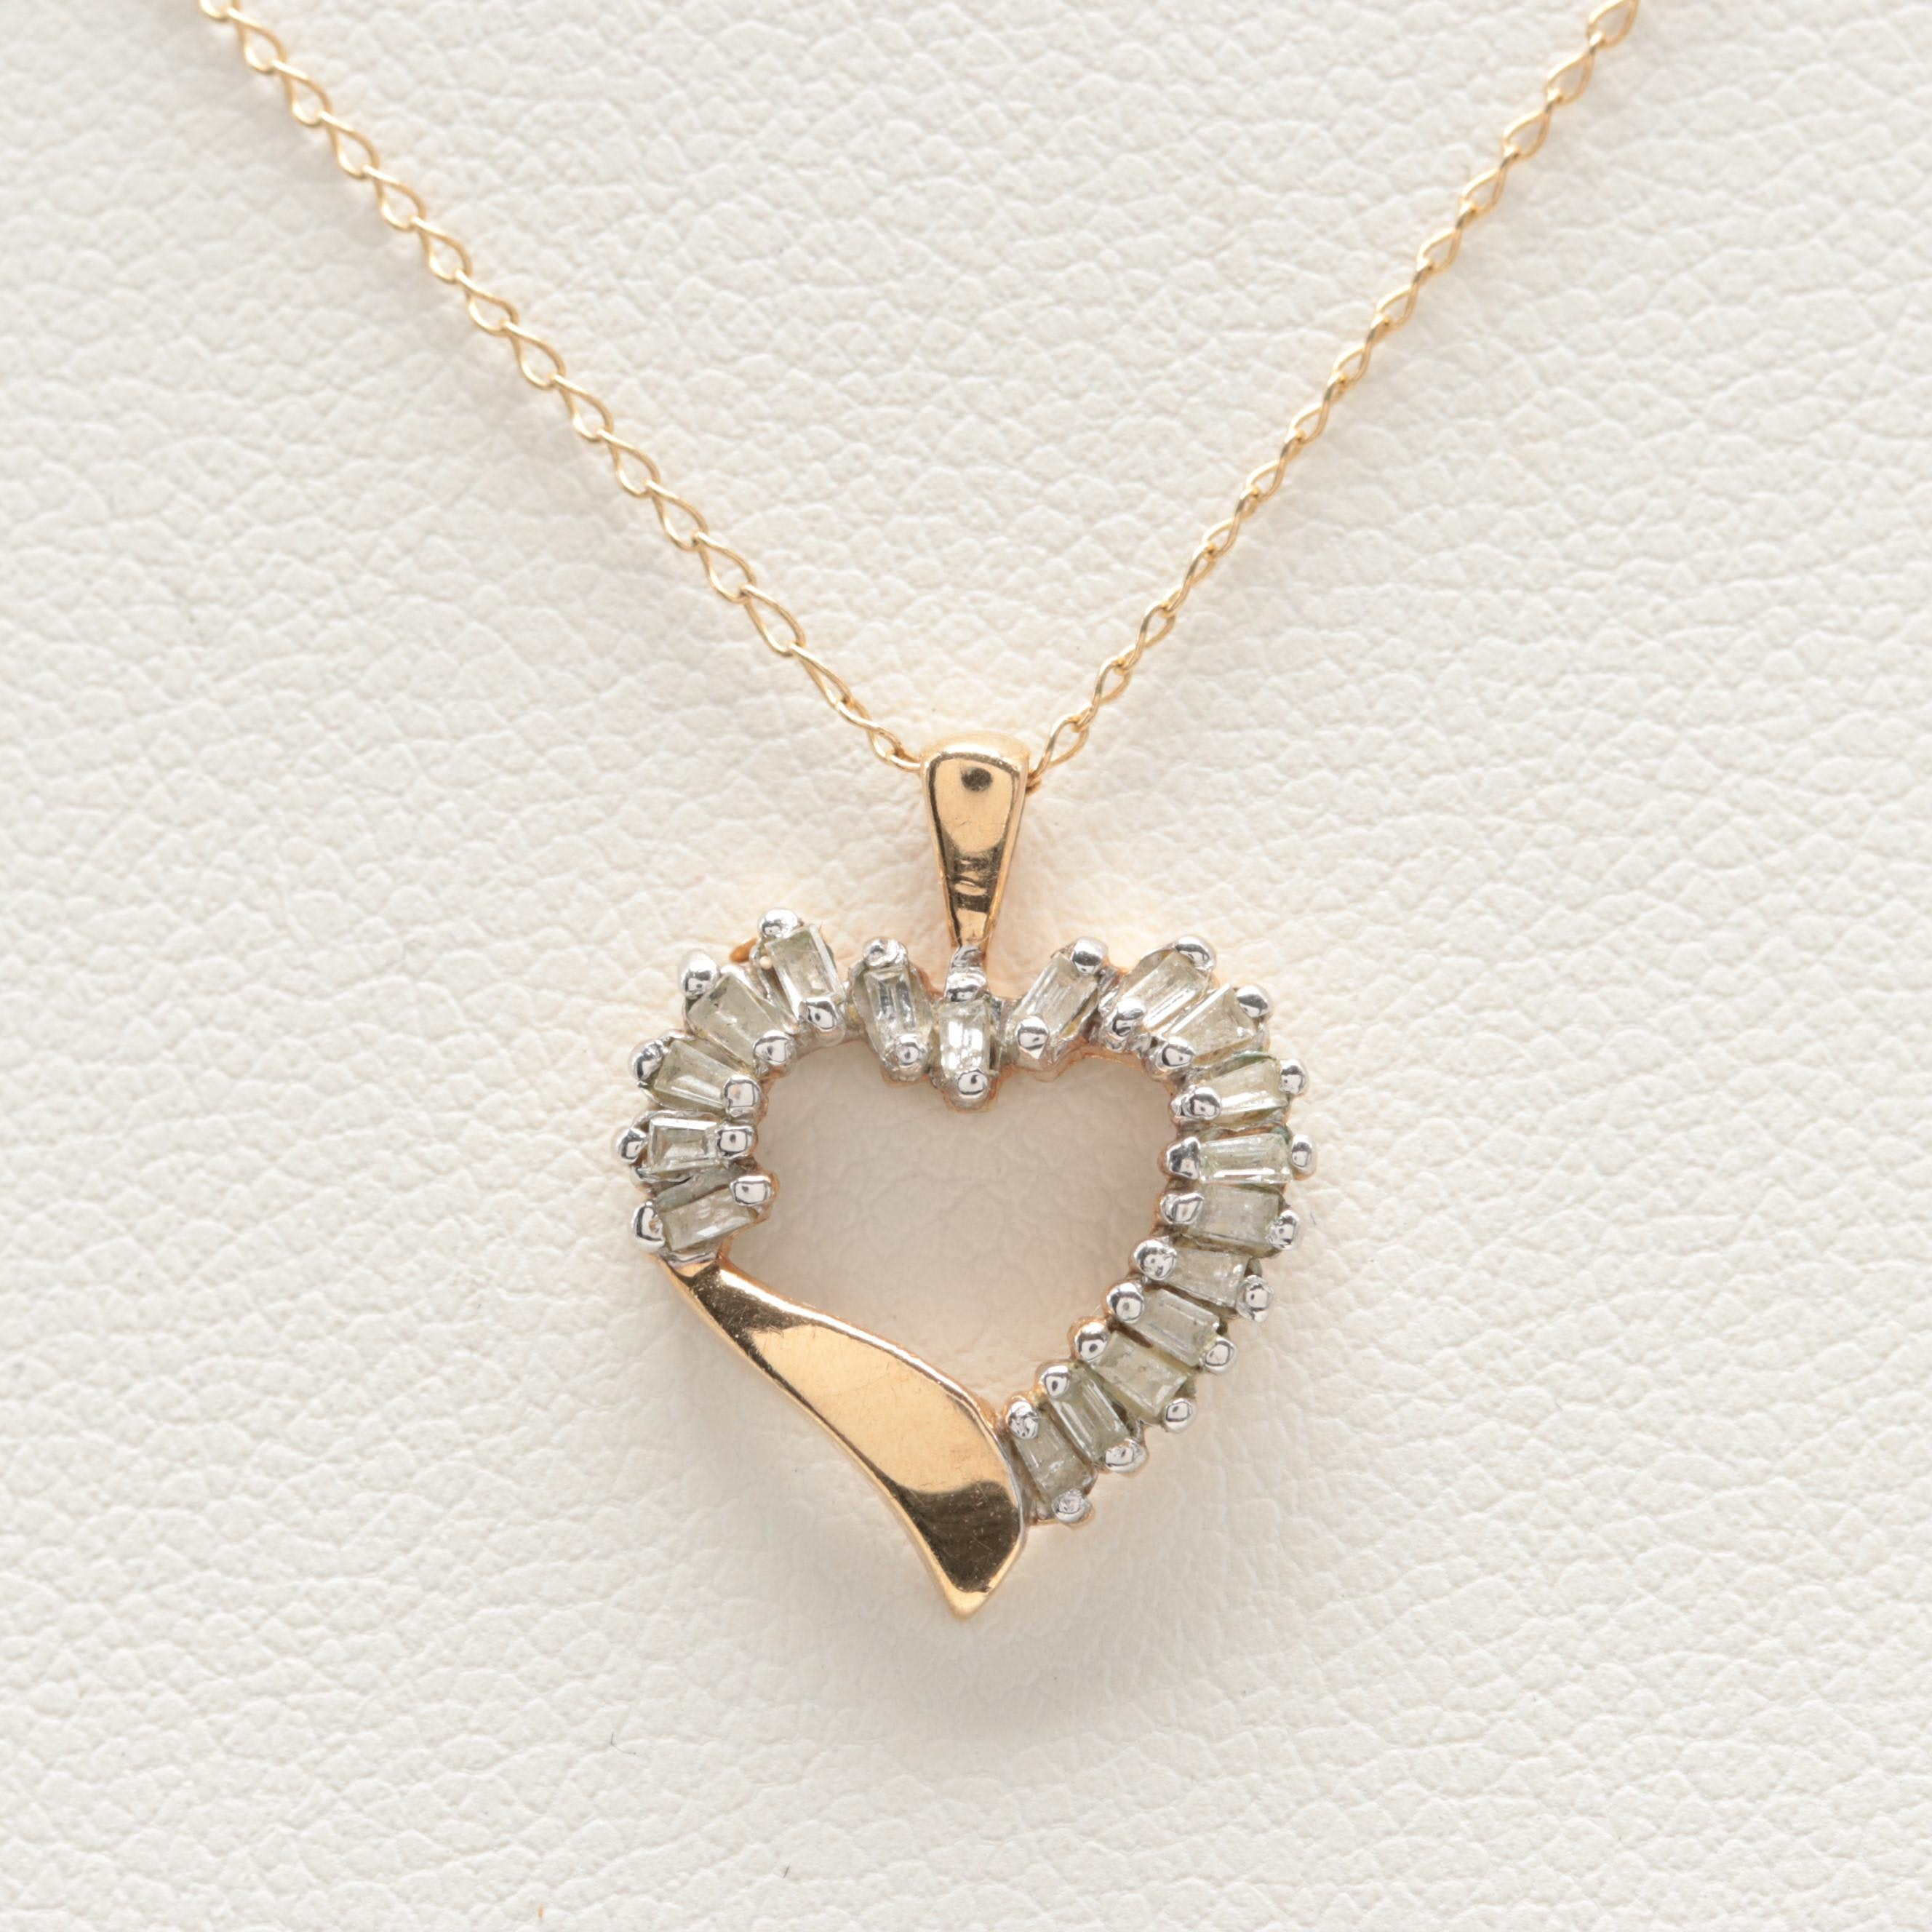 10K Yellow Gold Diamond Necklace